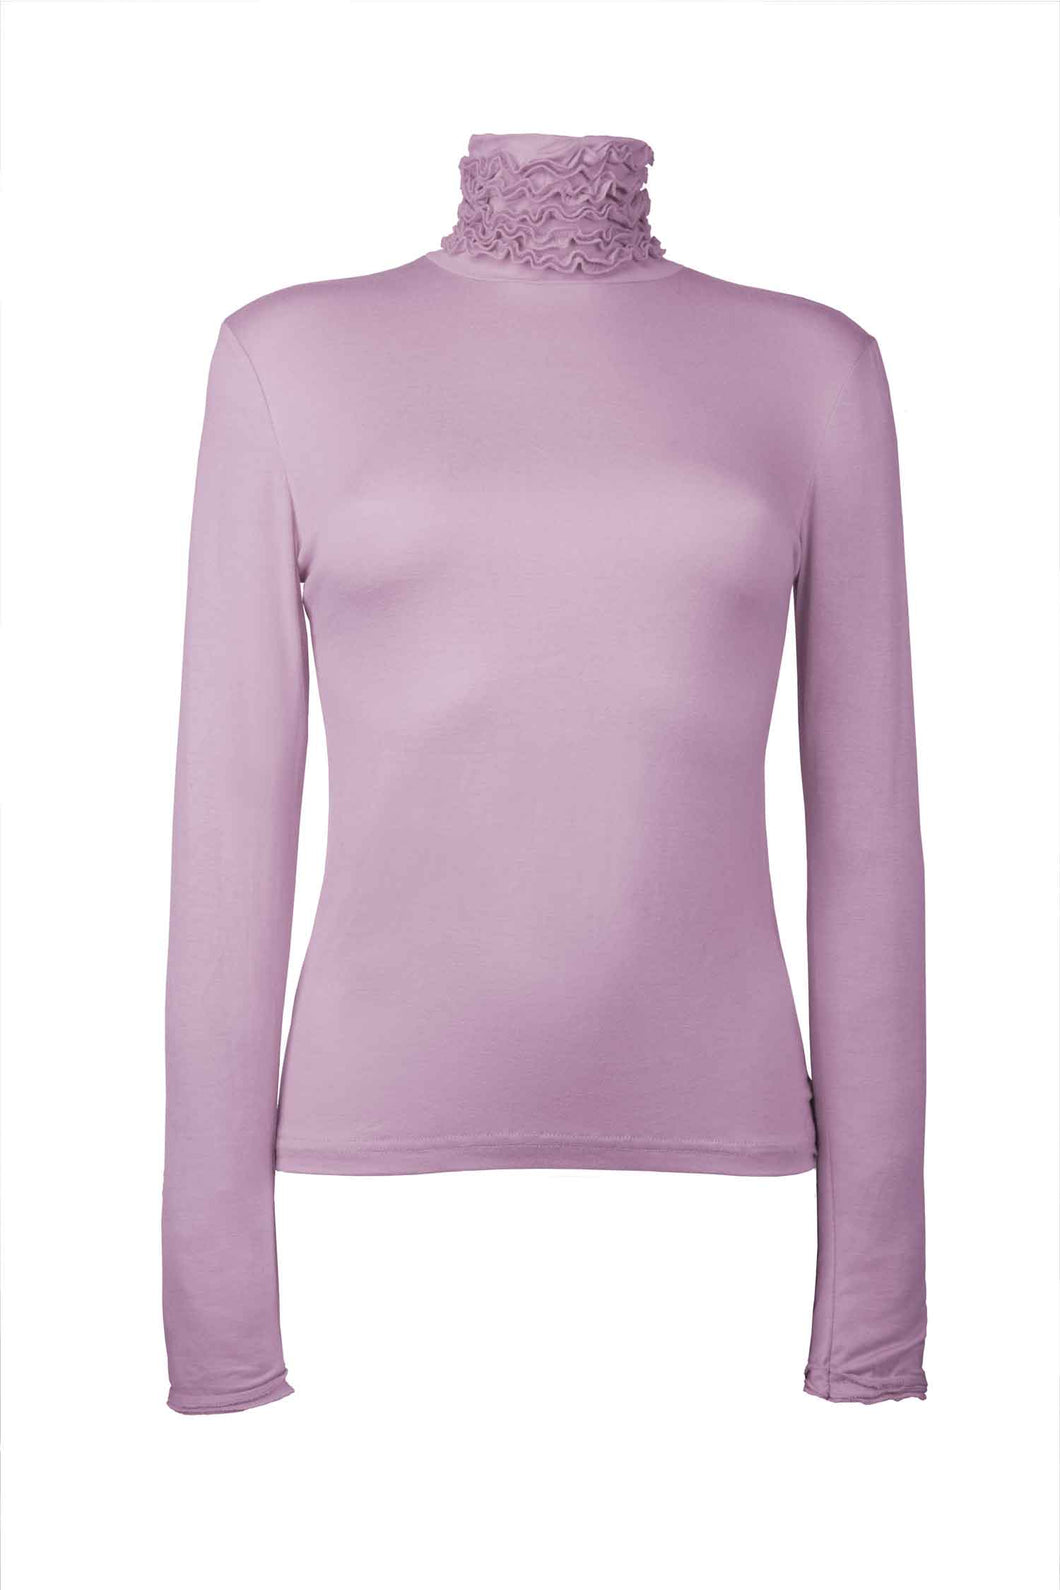 Best selling fine knit Ruffle Polo Neck Sweater in Lilac by Sally Allen